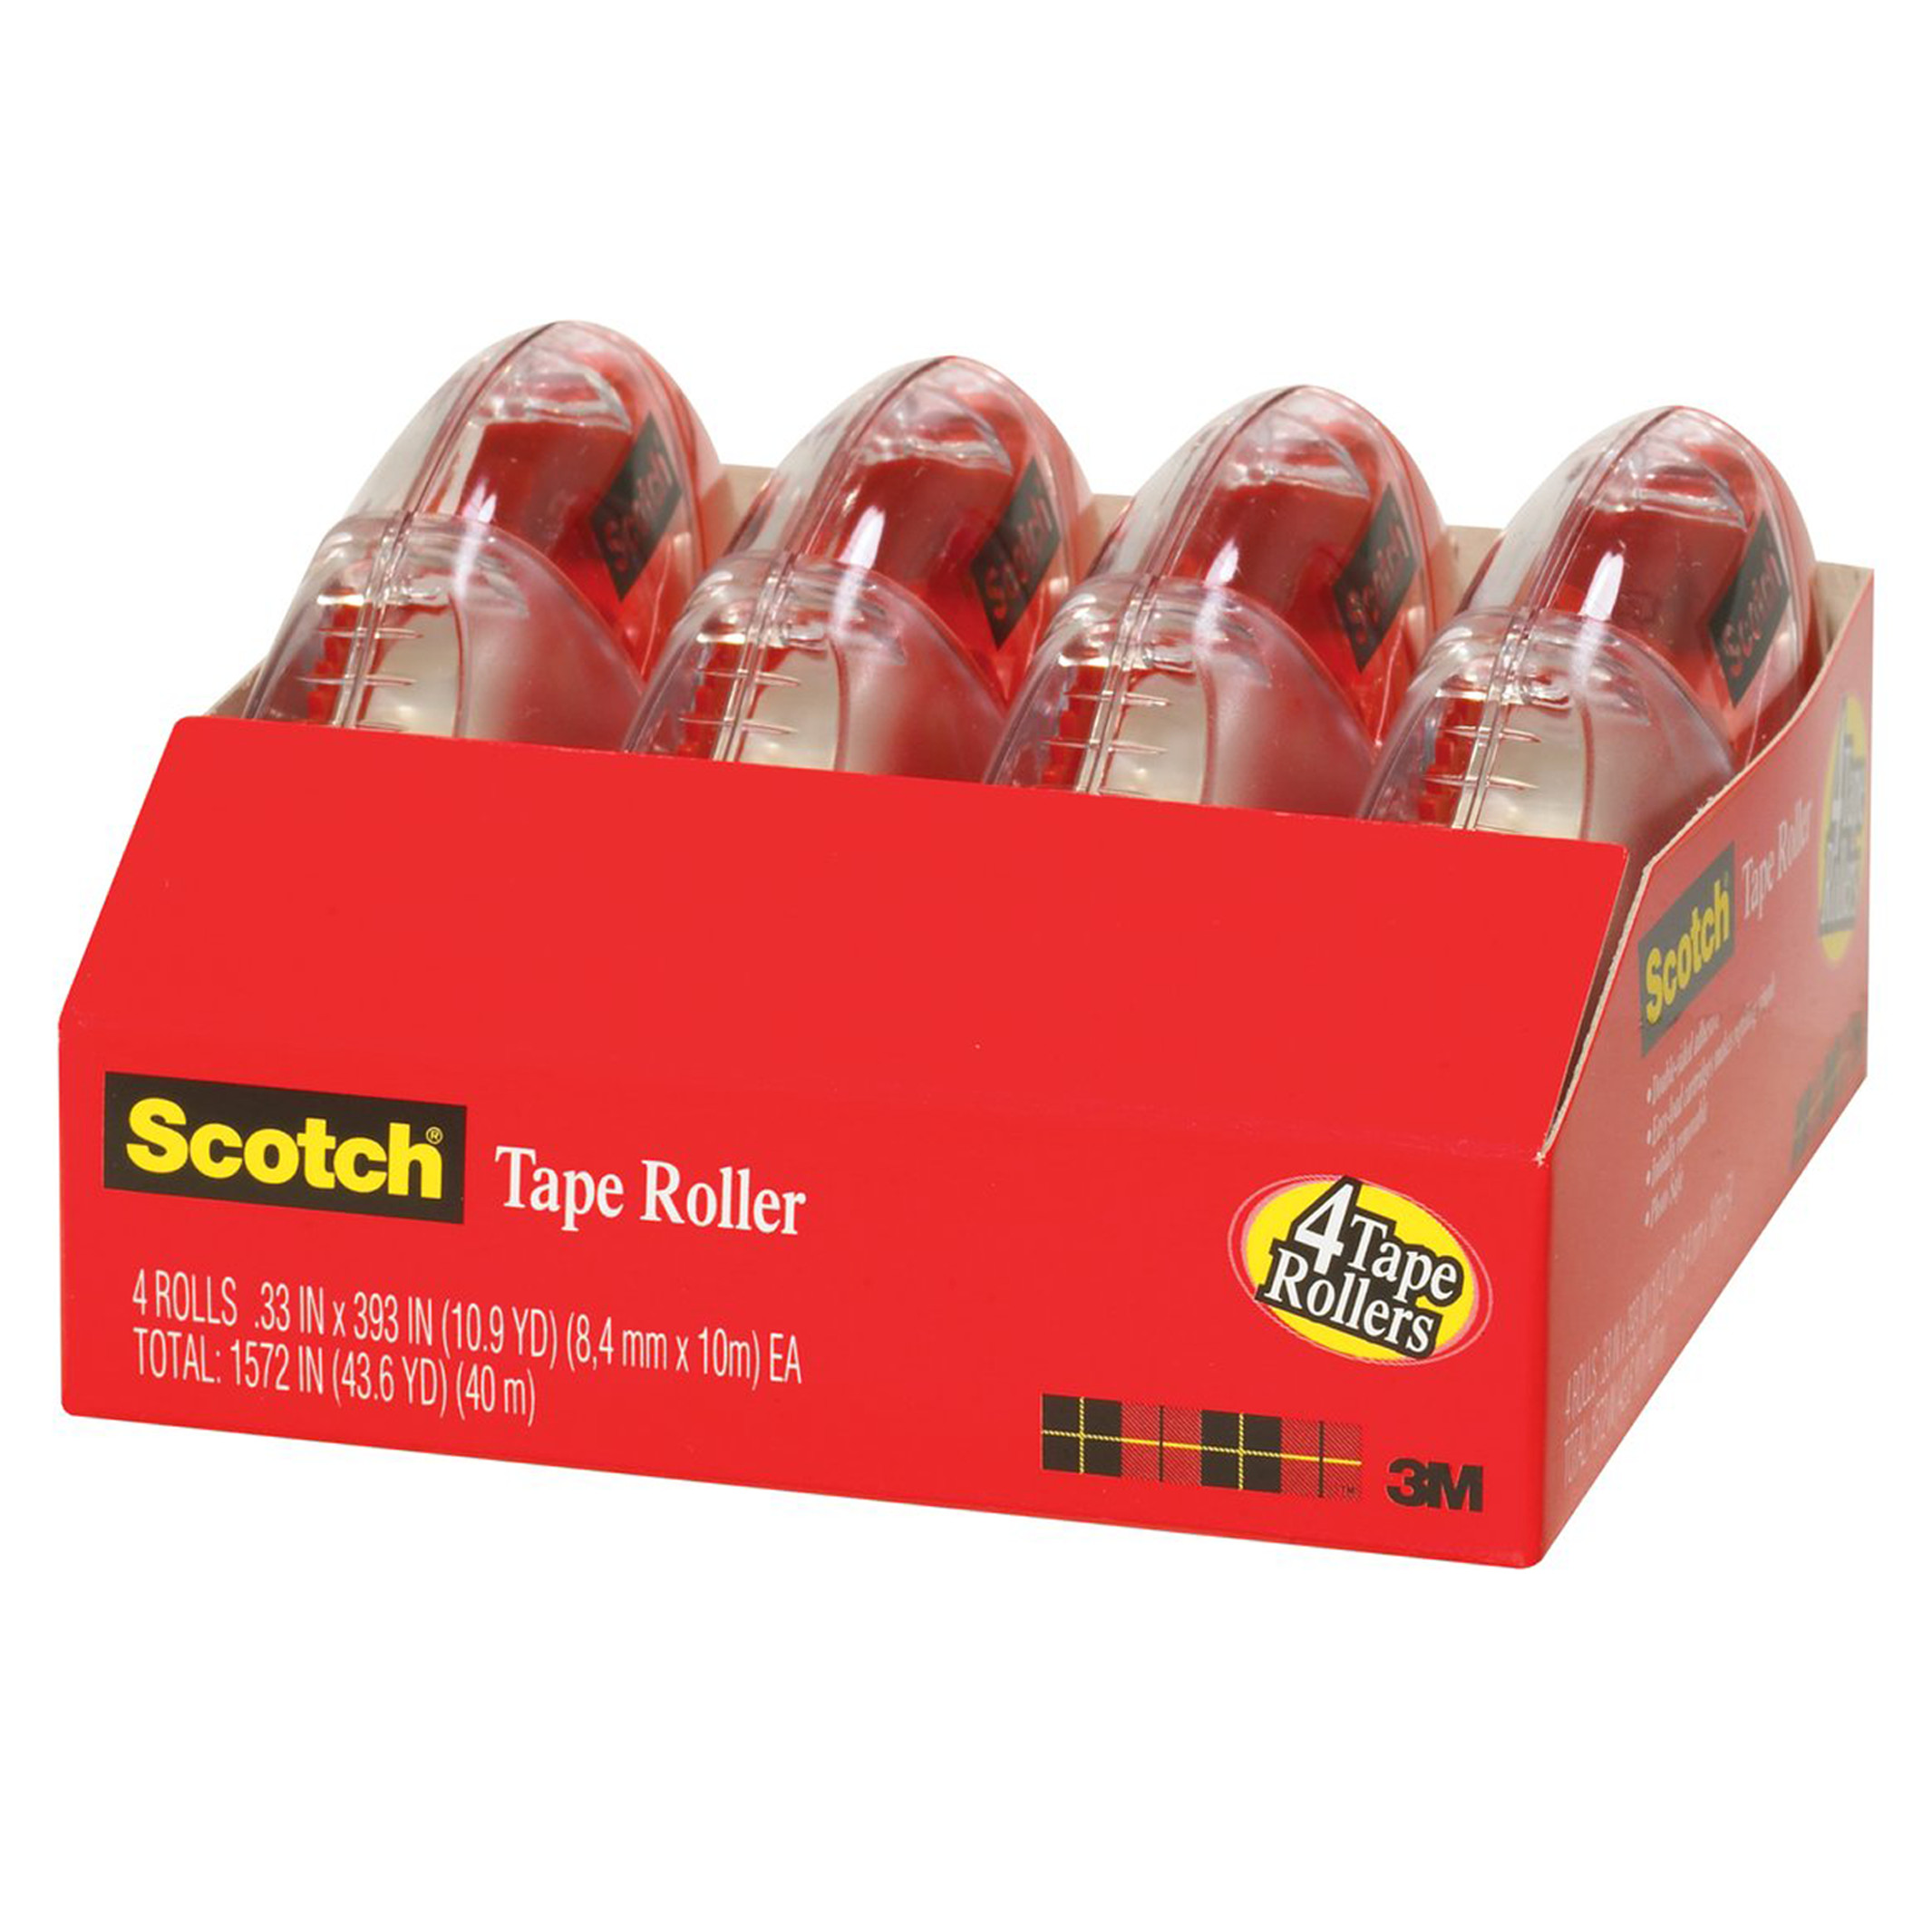 "Scotch Continuous Double-Sided Adhesive Roller w/Applicator, 1/3"" x 393"", Clear, 4/Pack"